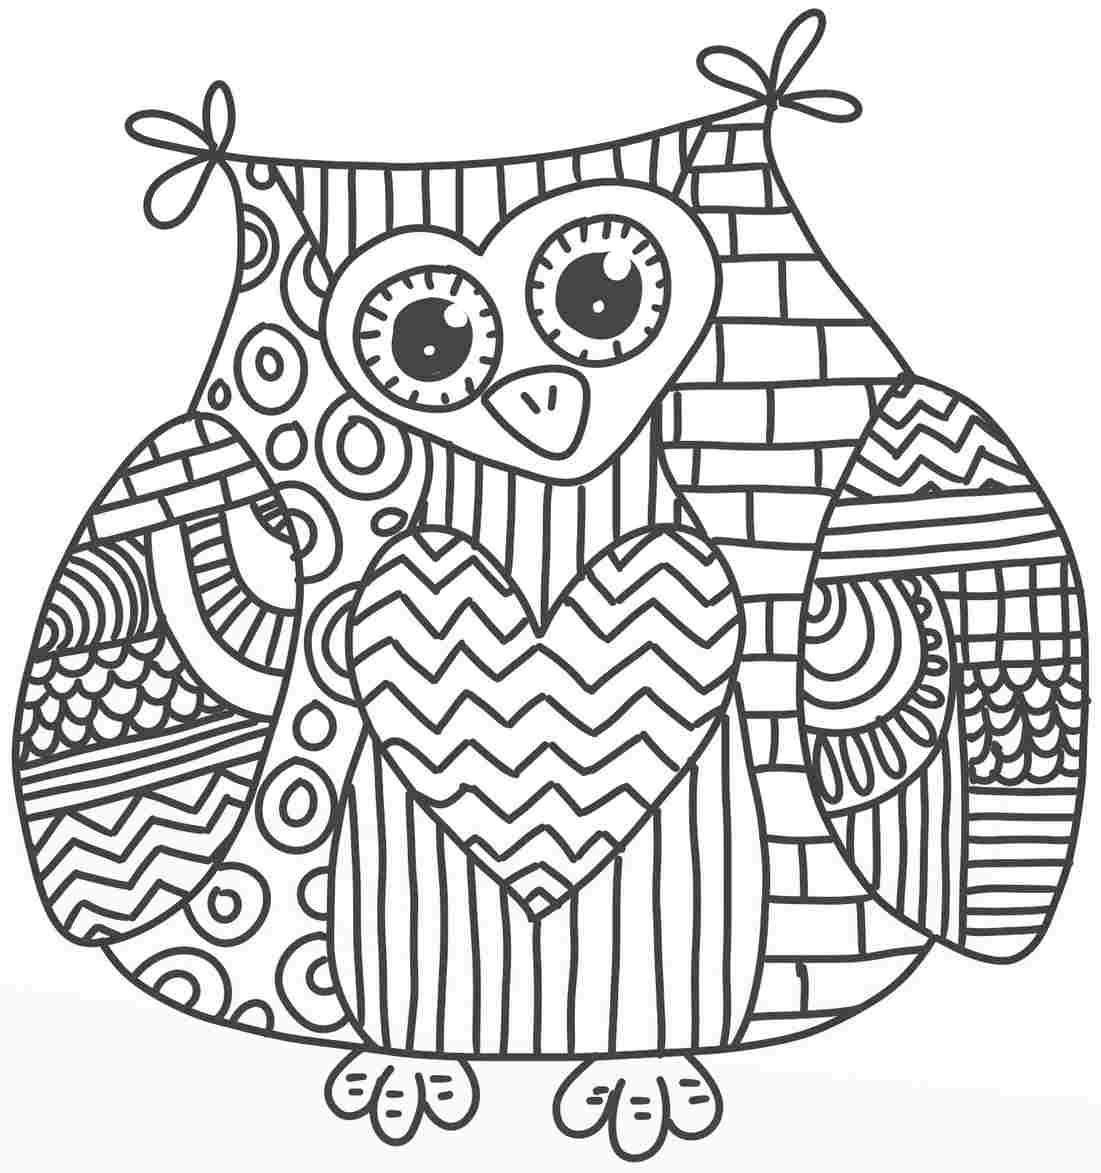 Pdf Coloring Pages For Adults Beautiful Adult Coloring Pages - Free Printable Coloring Pages For Adults Pdf